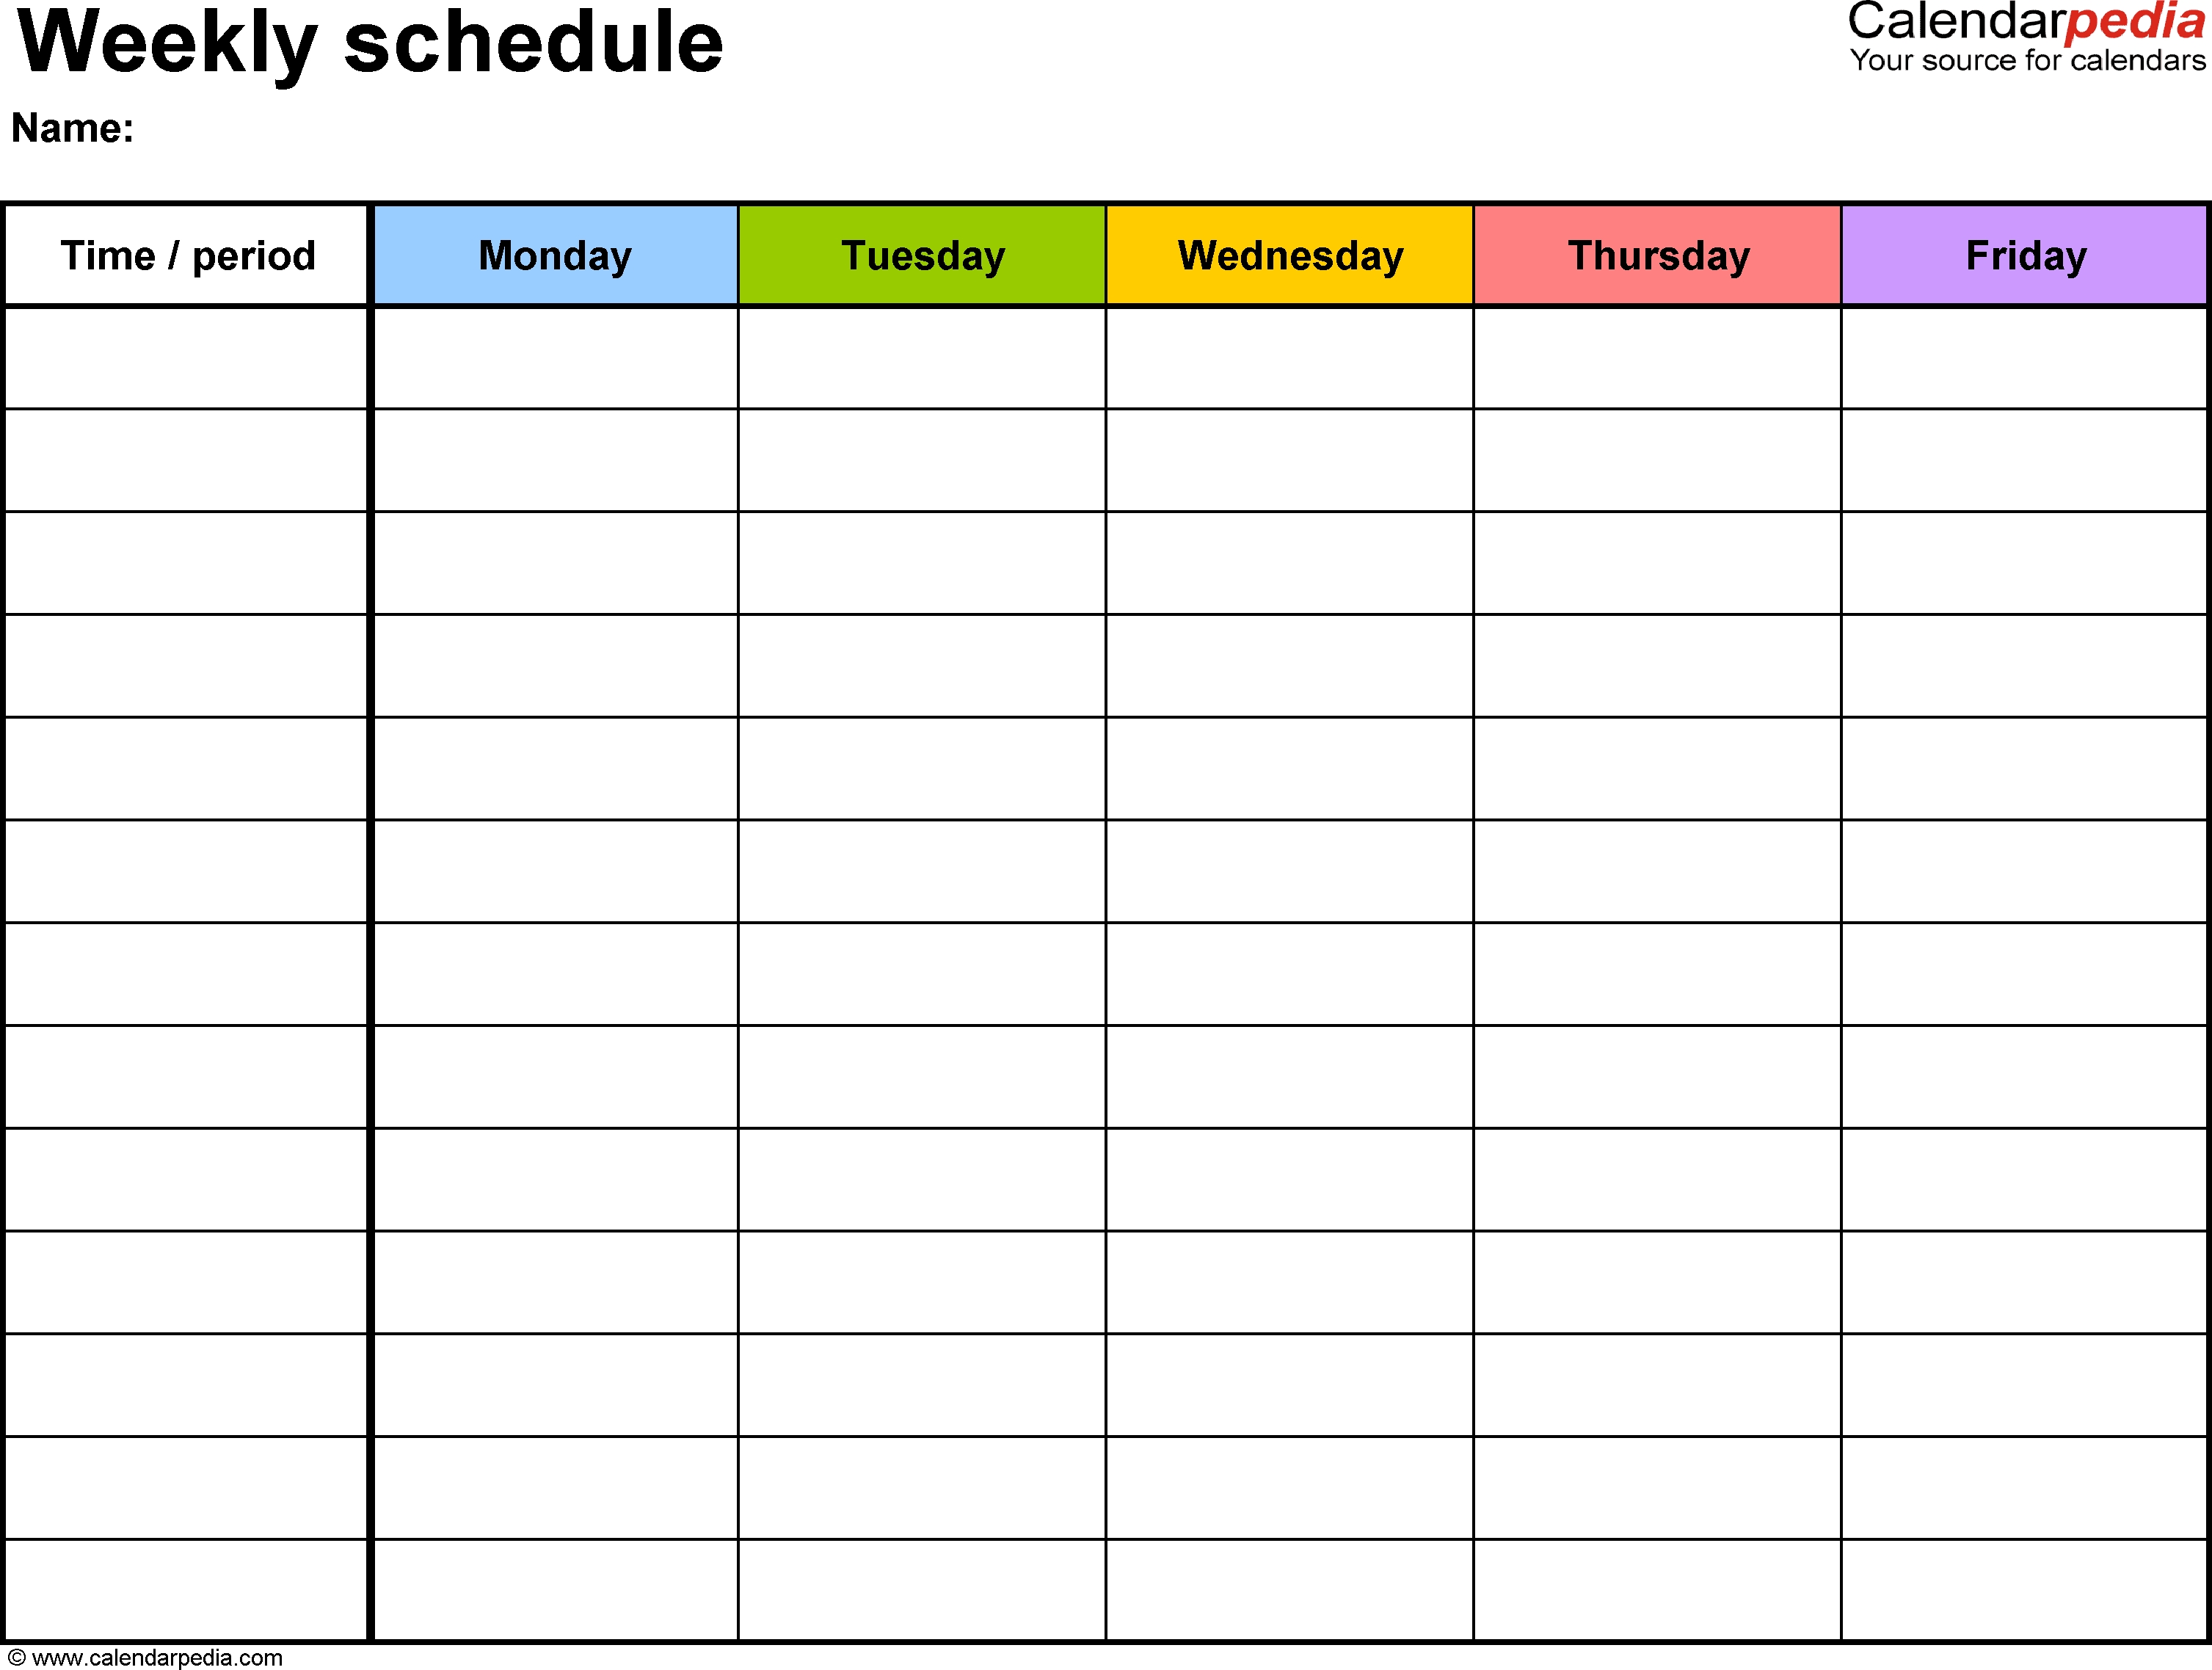 Free Weekly Schedule Templates For Word - 18 Templates in One Week Blank Calendar Printable